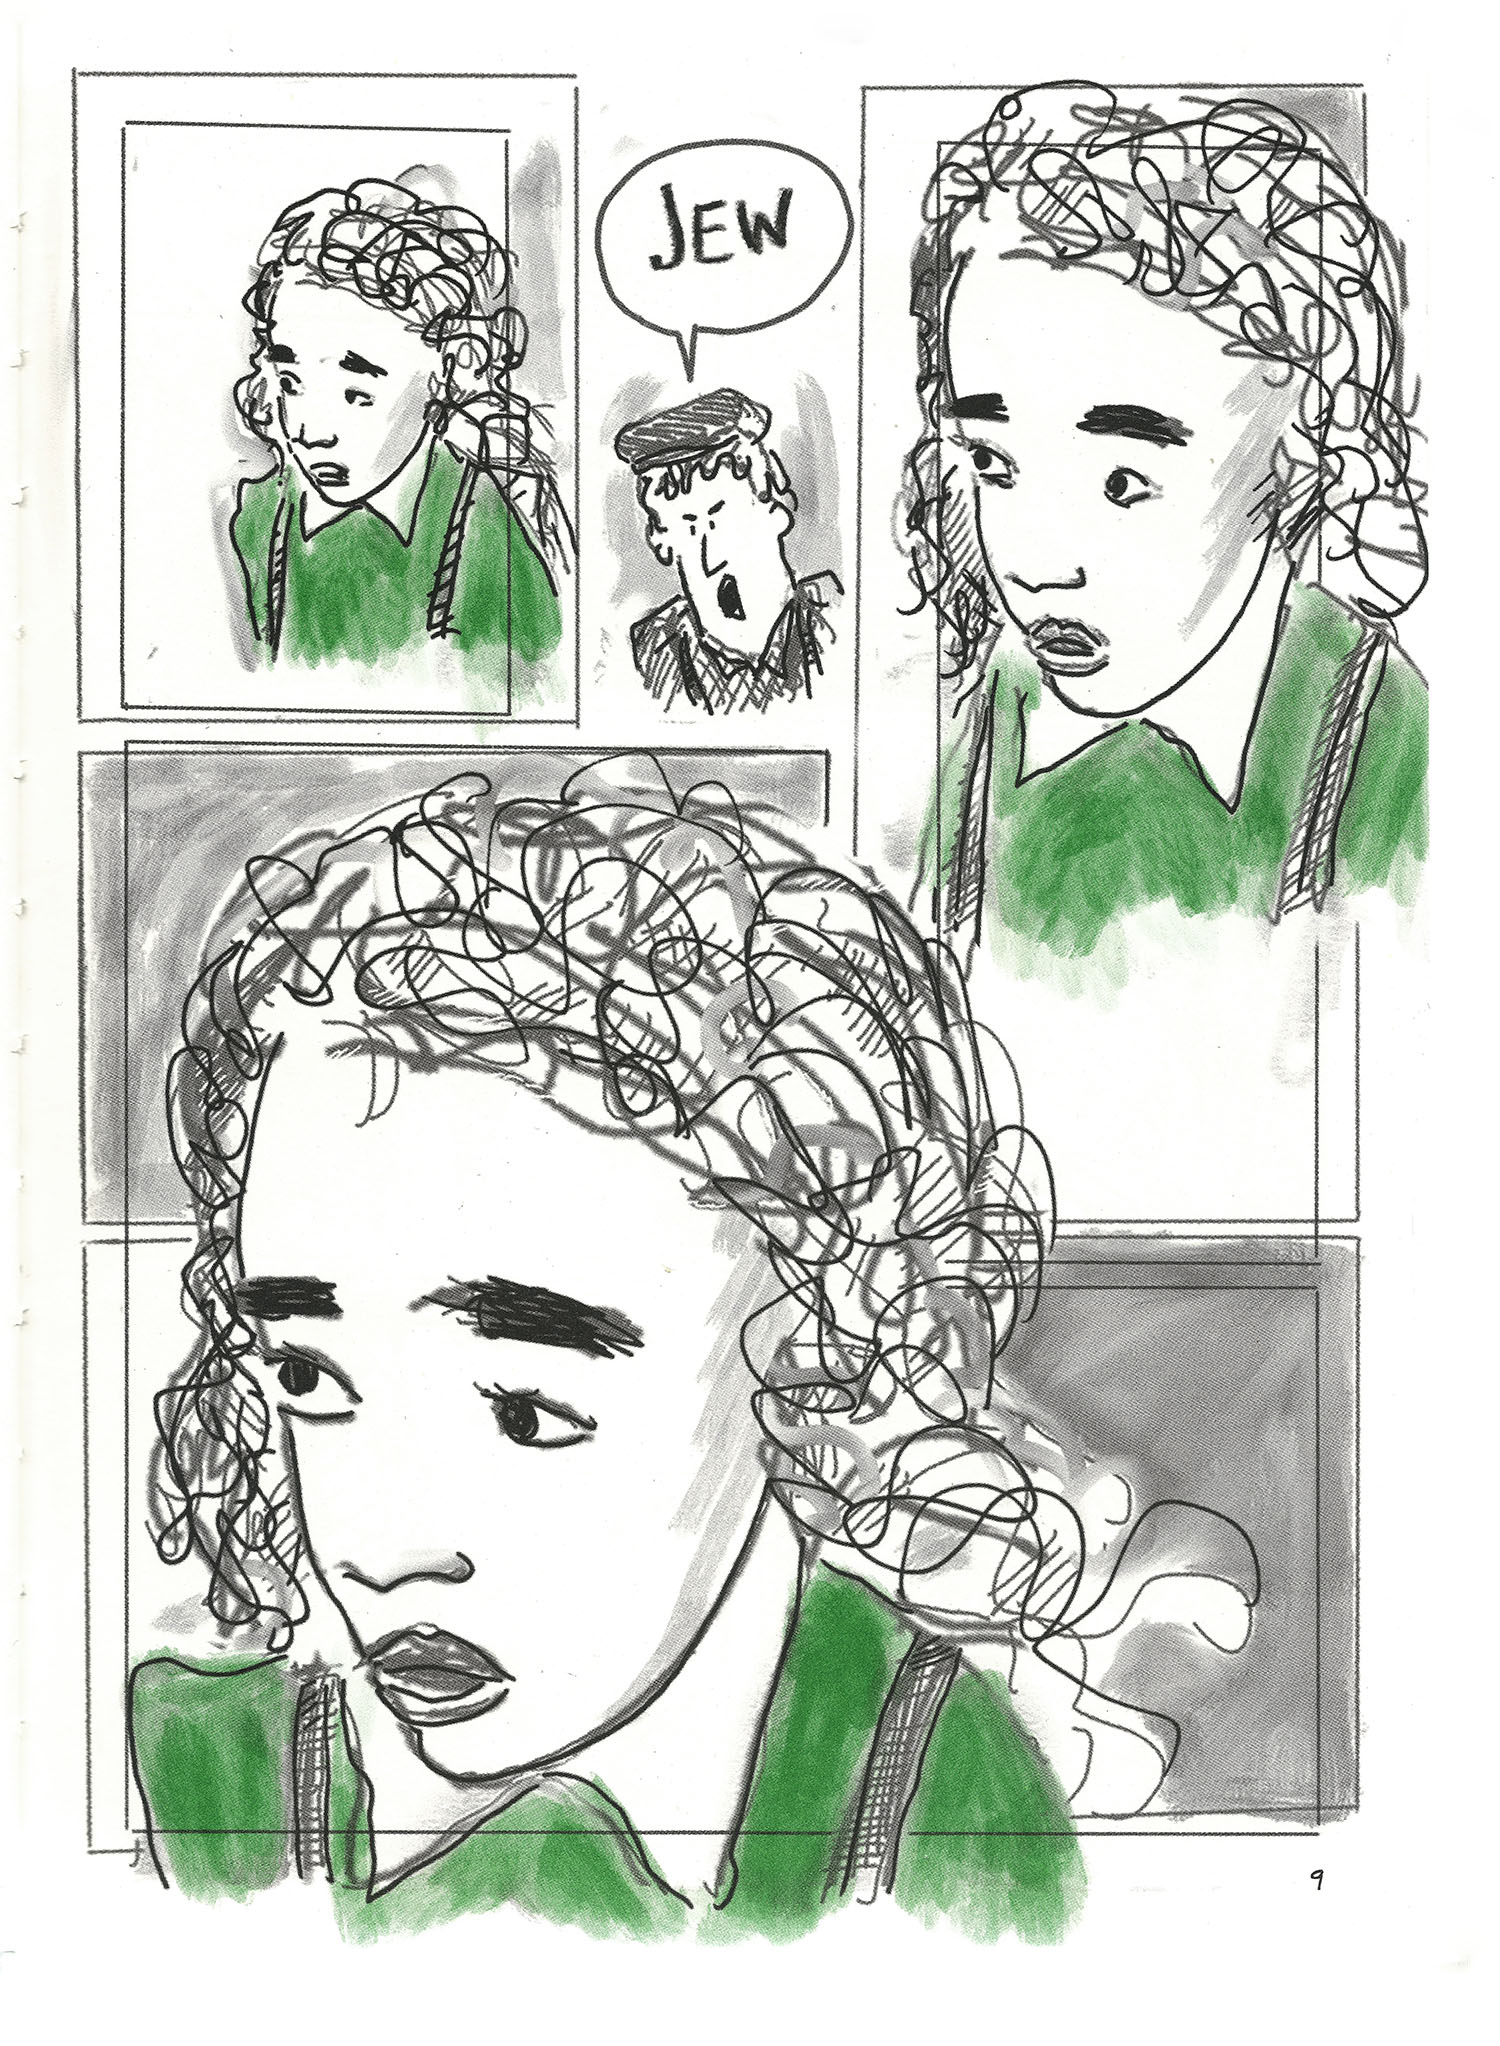 """Three repetitions of a portrait of Arendt when she was young, interrupted by a man saying """"Jew."""""""